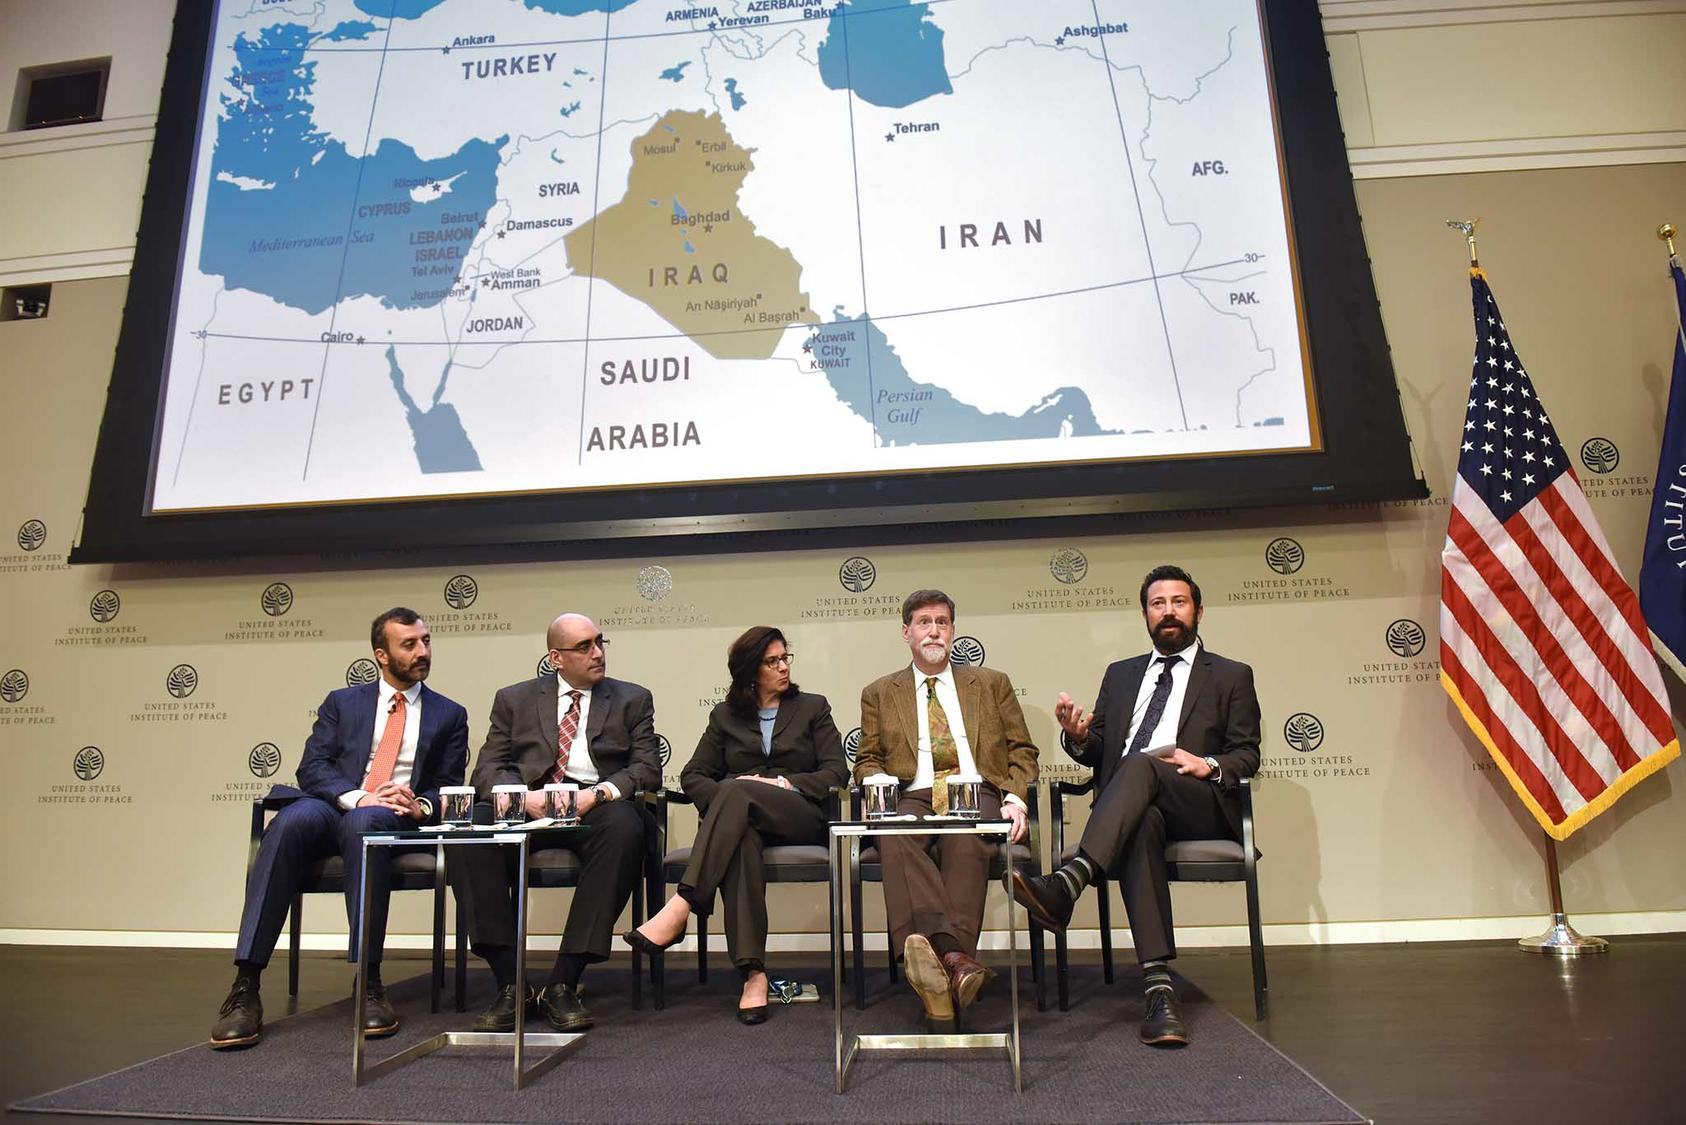 Panelists from the second discussion of the day discussed the region surrounding Iraq and Syria with a map displayed overhead